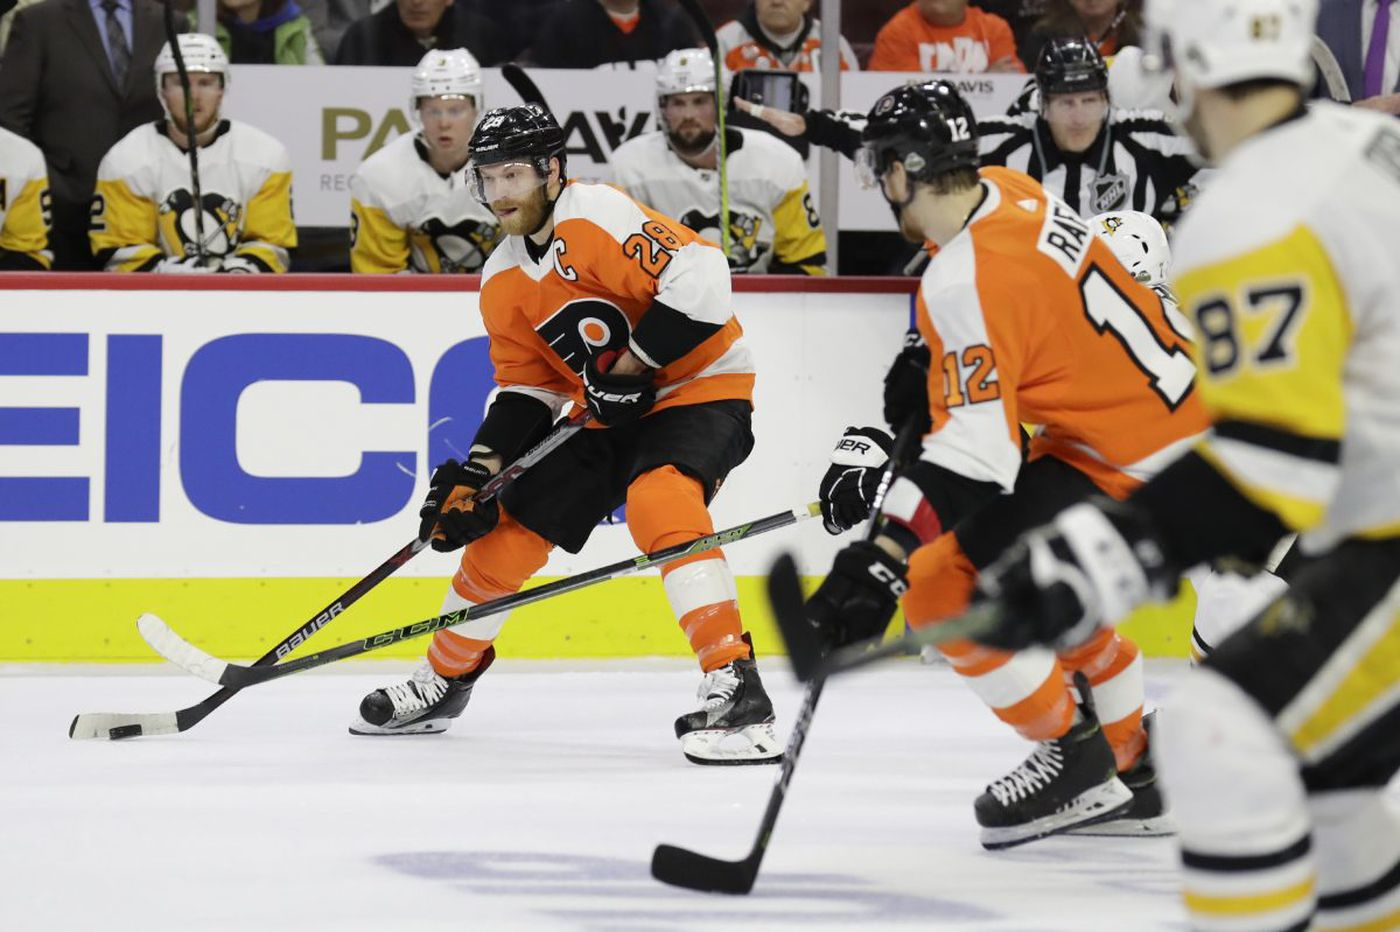 Grading the Flyers: Most forwards slipped in the postseason